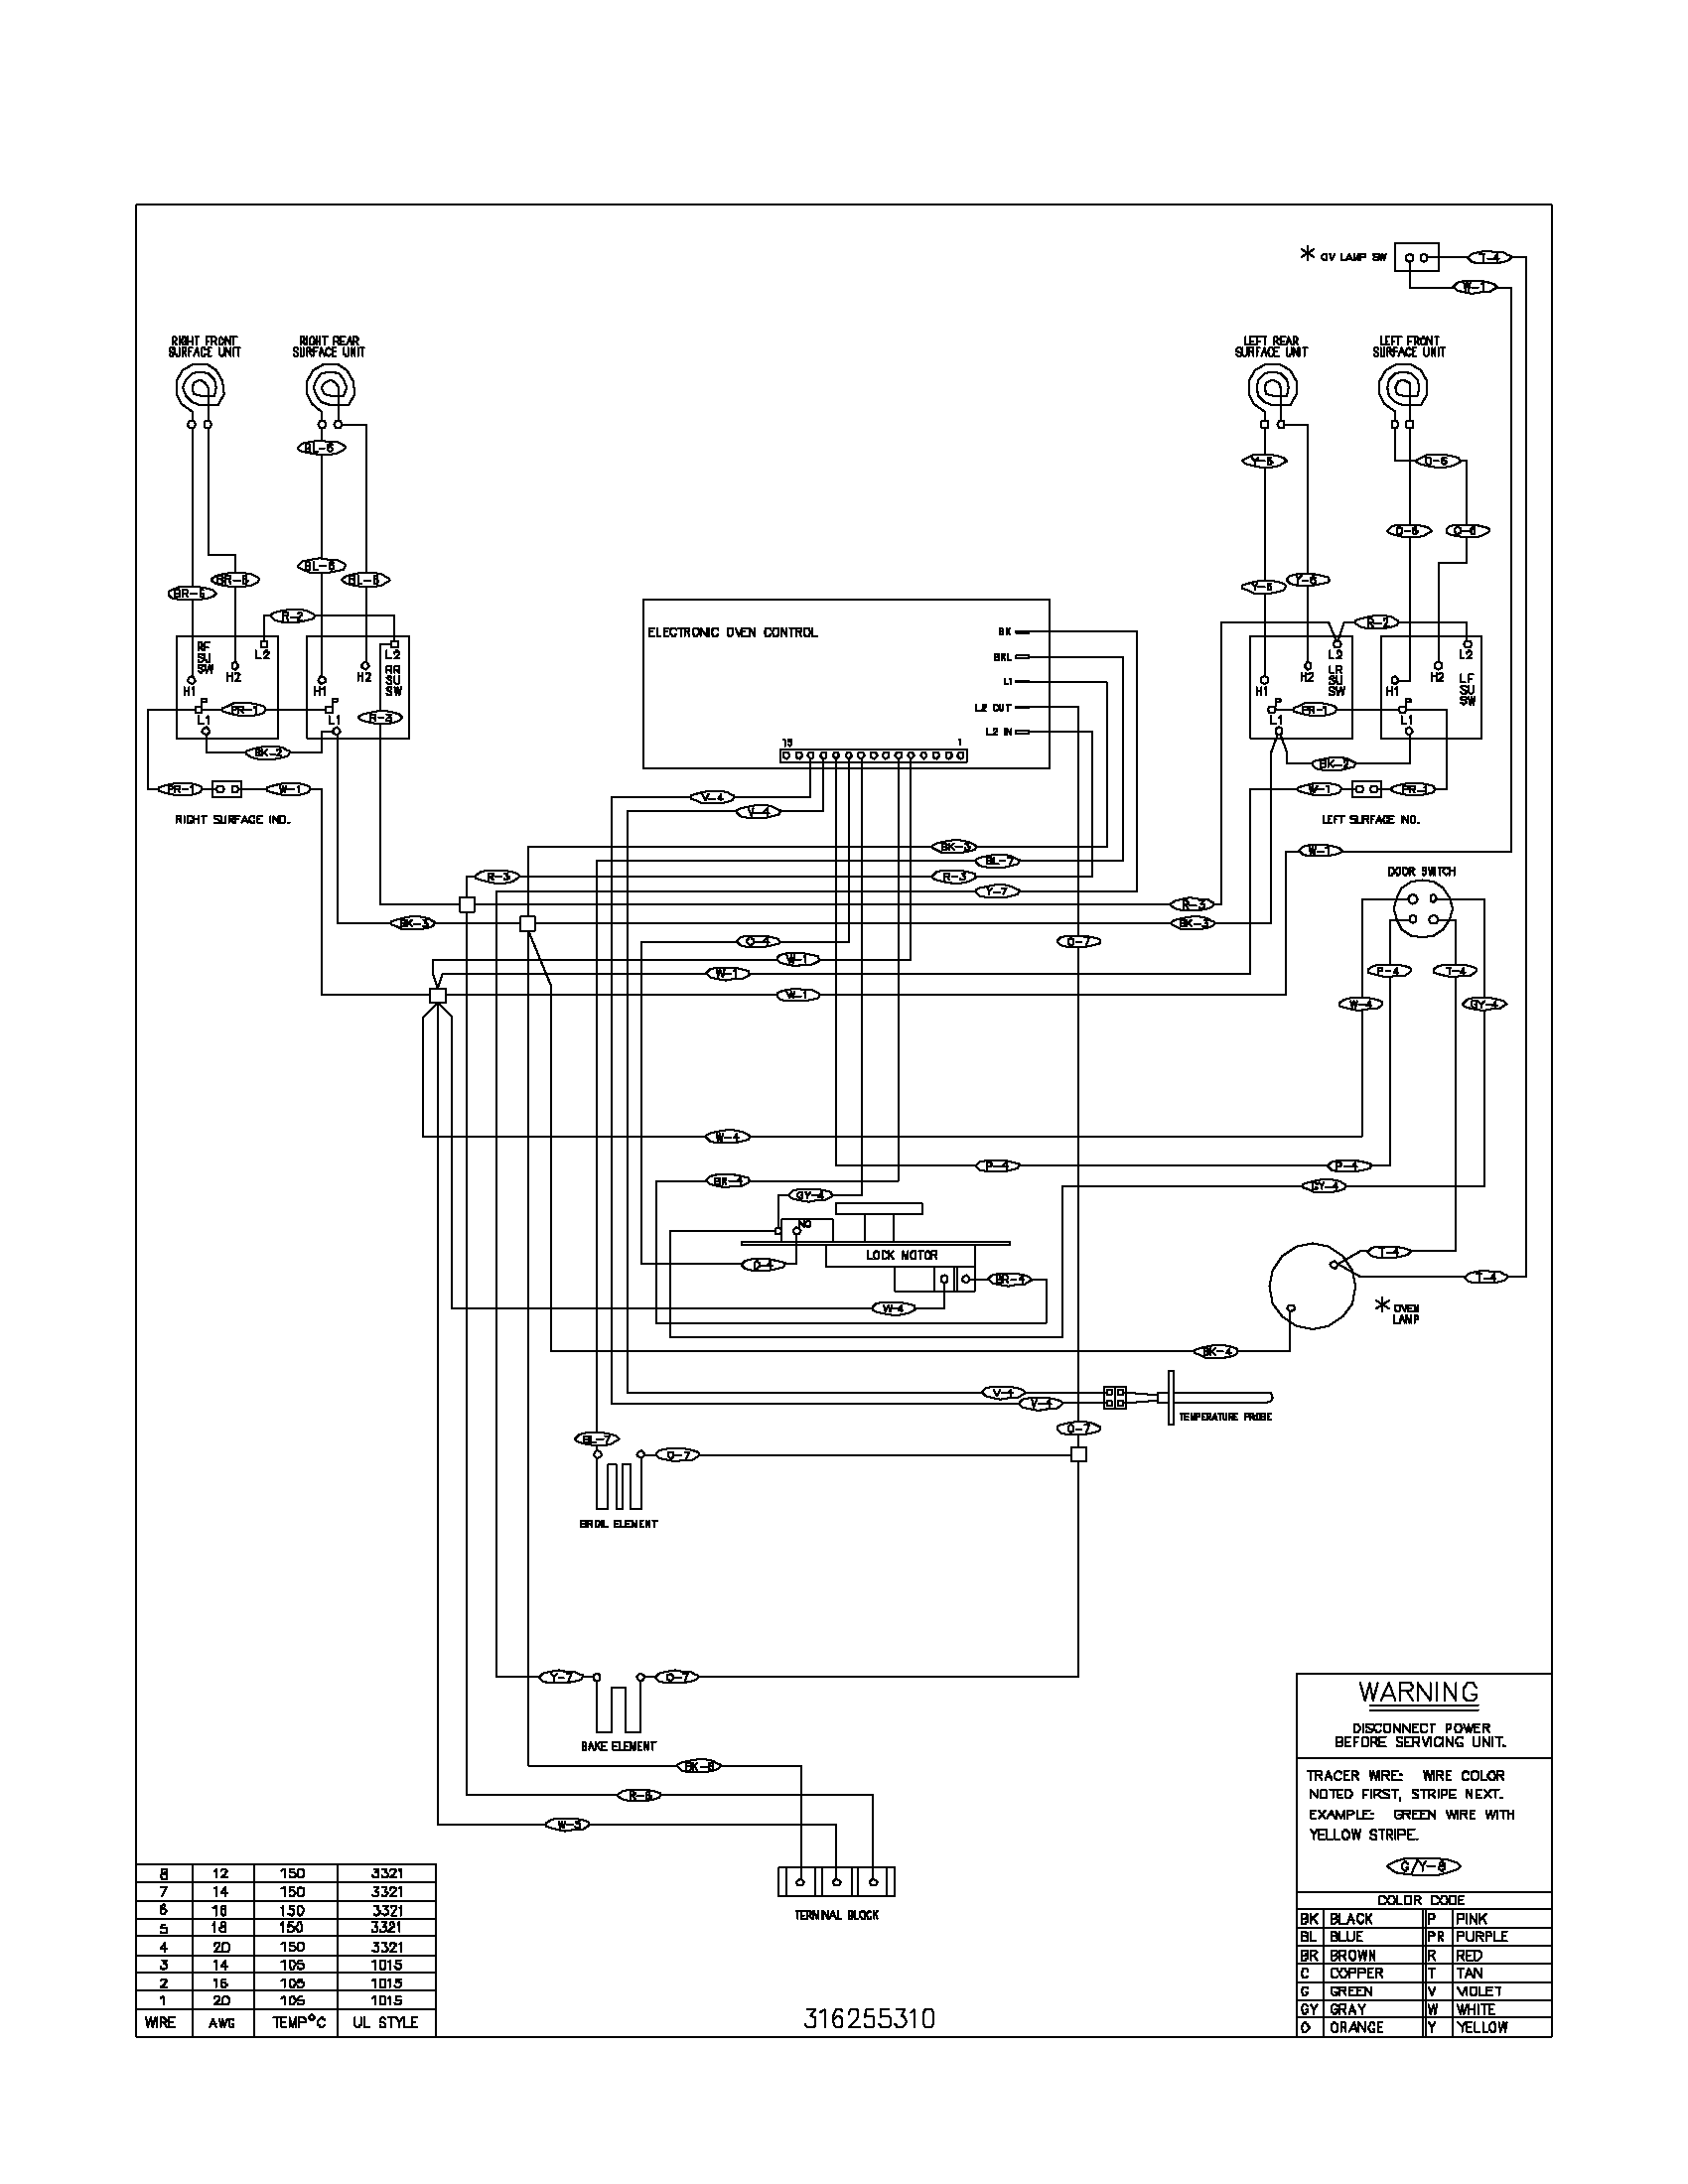 wiring diagram parts frigidaire fef352asf electric range timer stove clocks and frigidaire refrigerator wiring schematic at gsmx.co